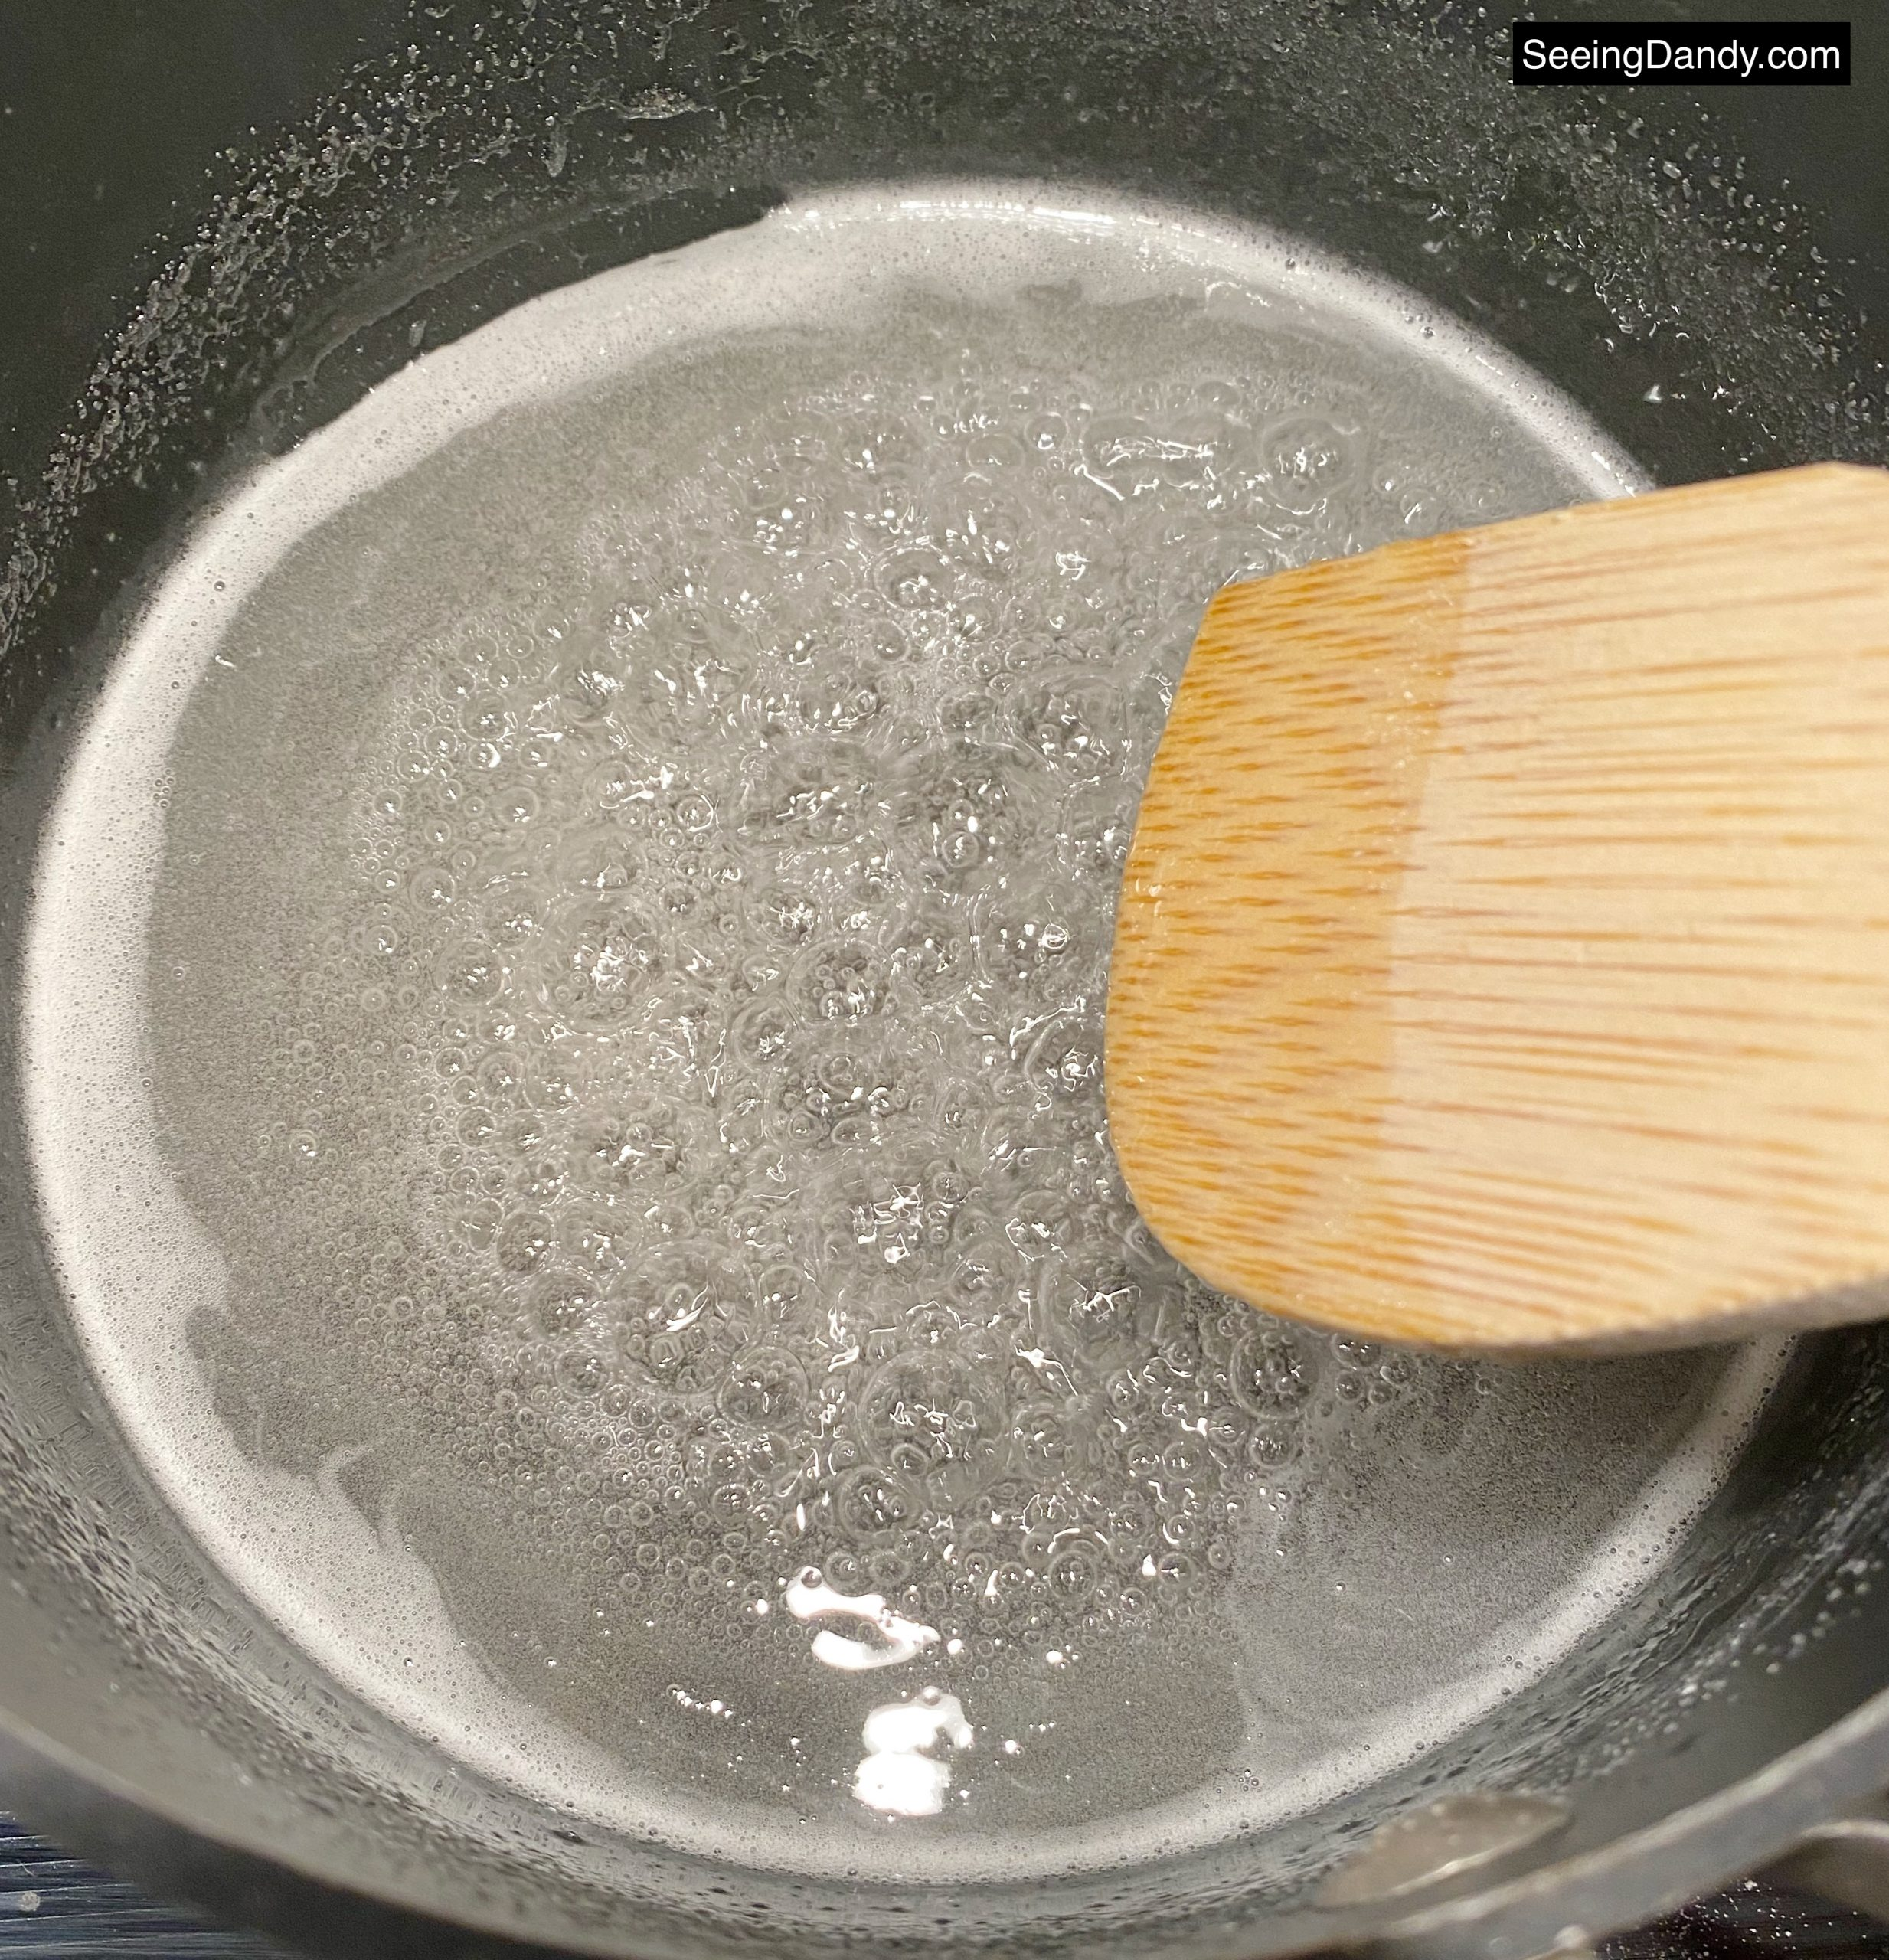 boiling saucepan, sugar, salt, cream of tartar, wooden spoon